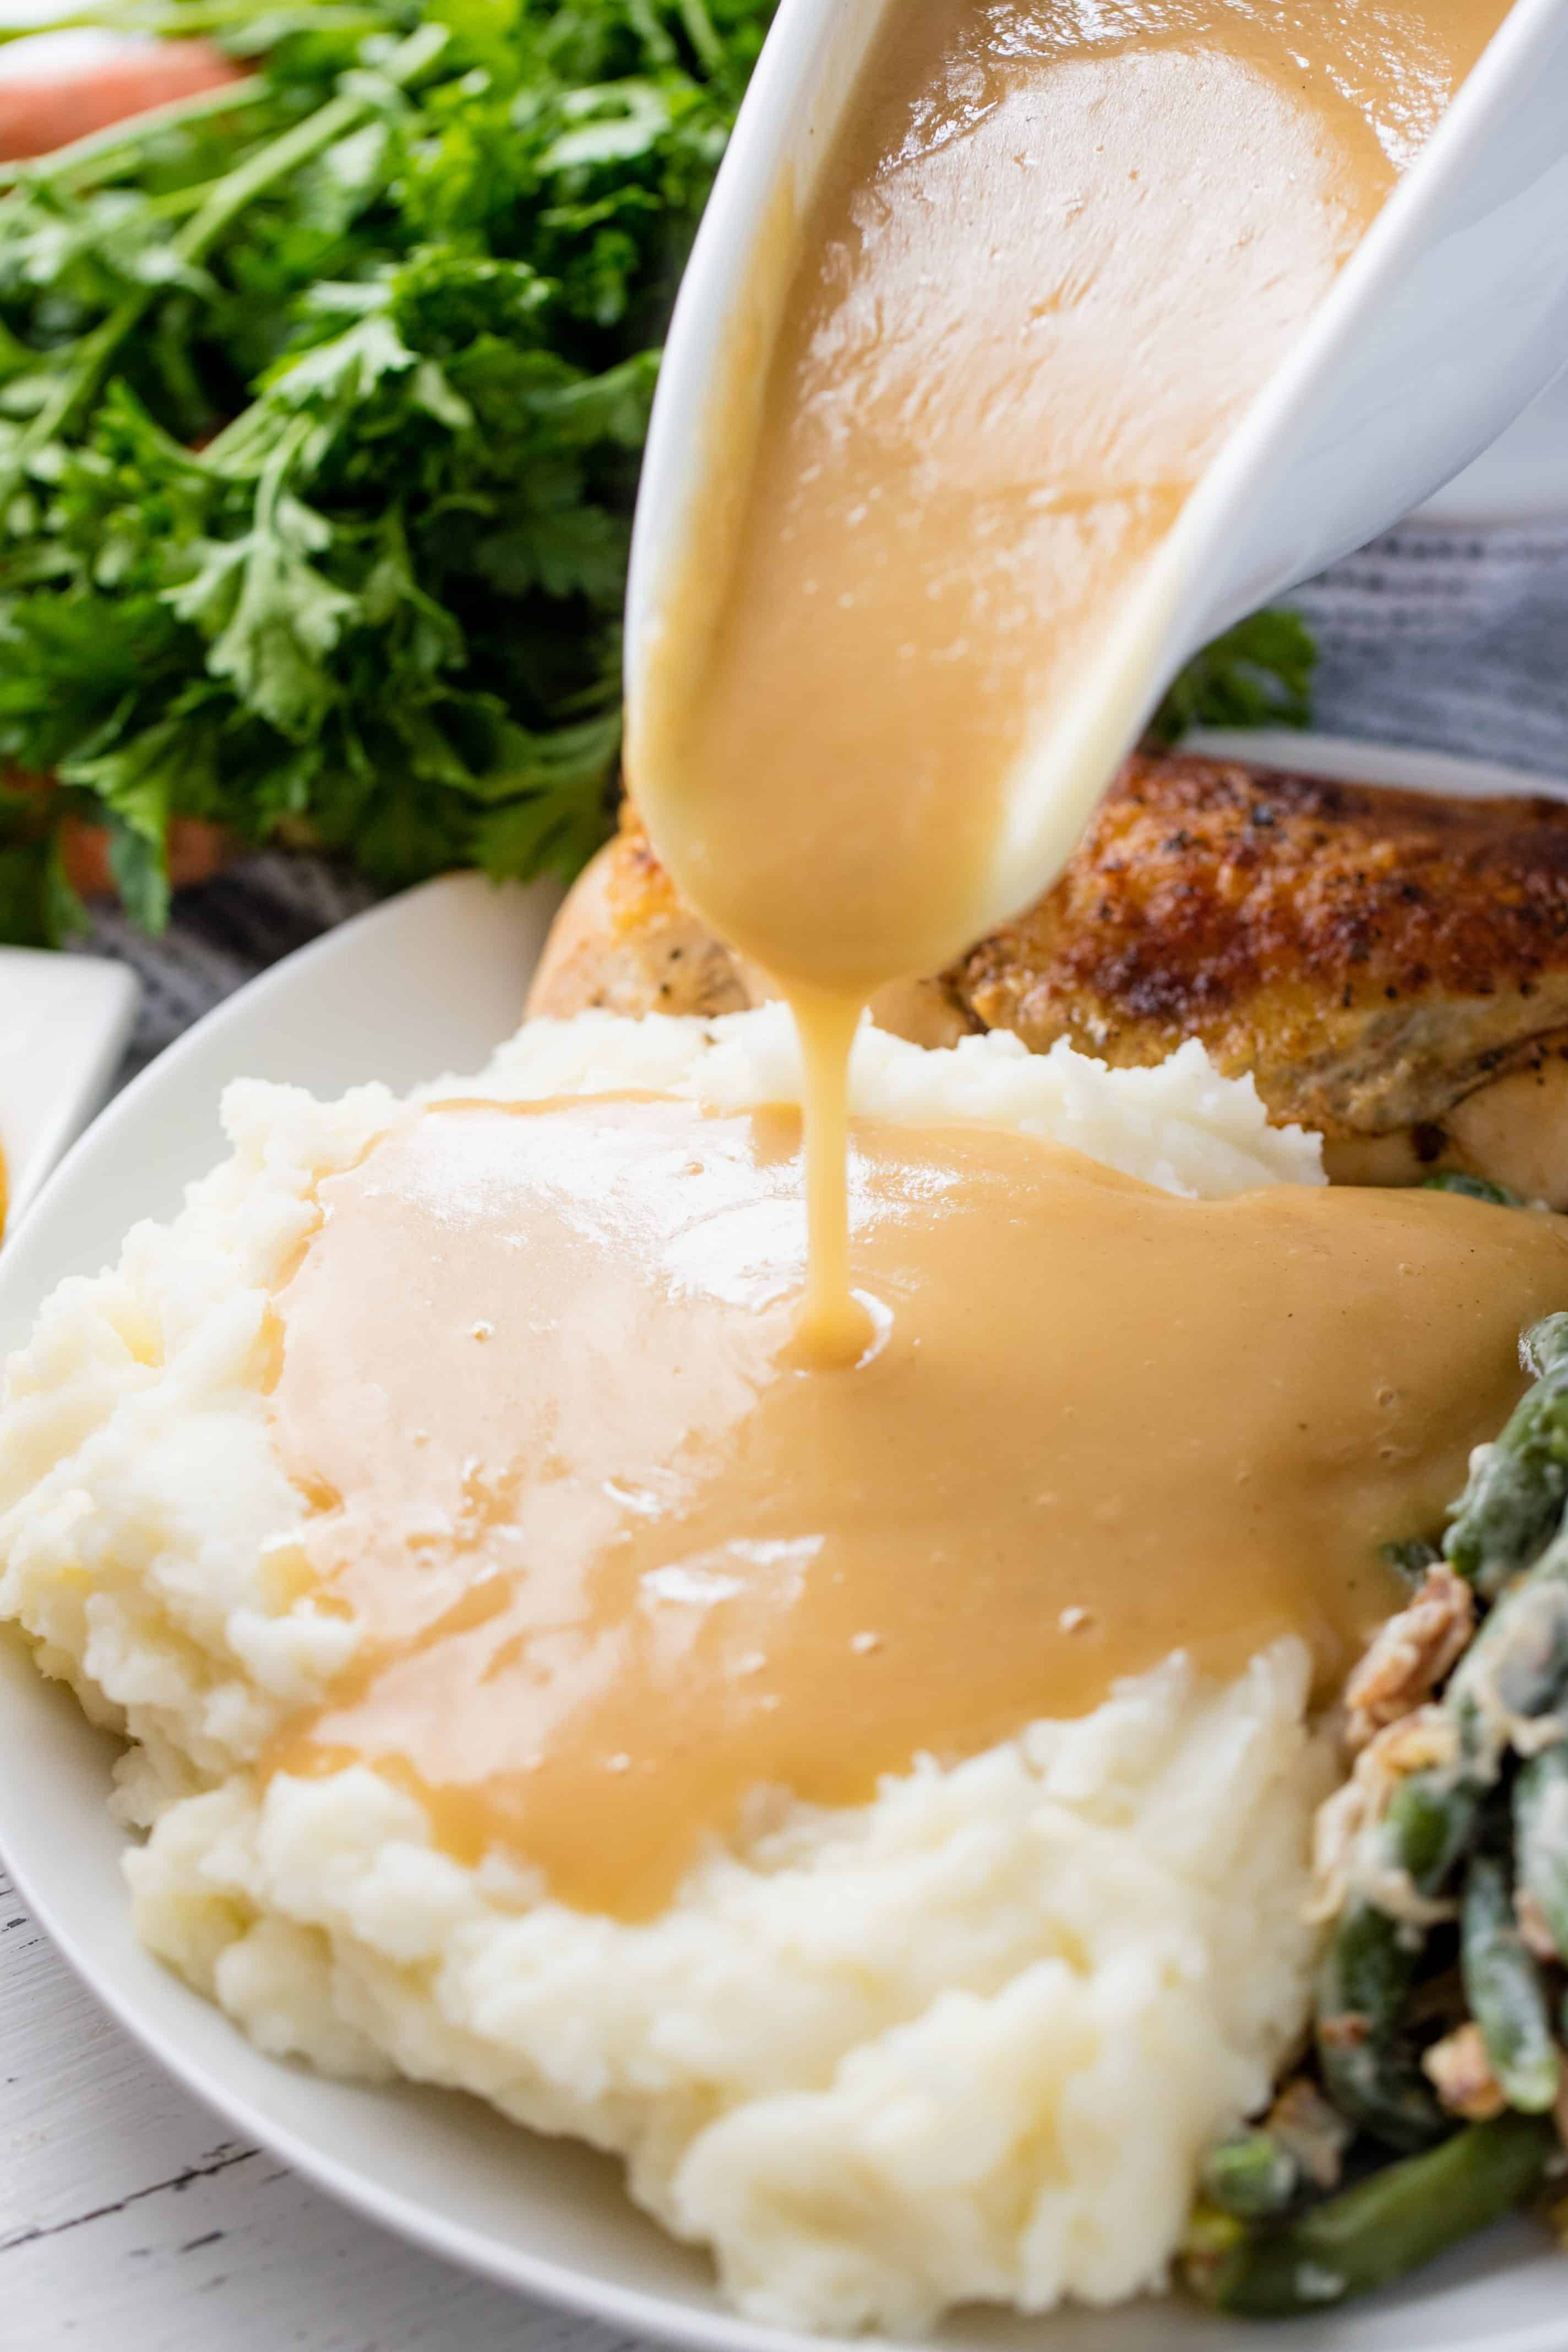 How To Make Gravy The Ultimate Guide Recipe Homemade Gravy Homemade Turkey Gravy How To Make Gravy